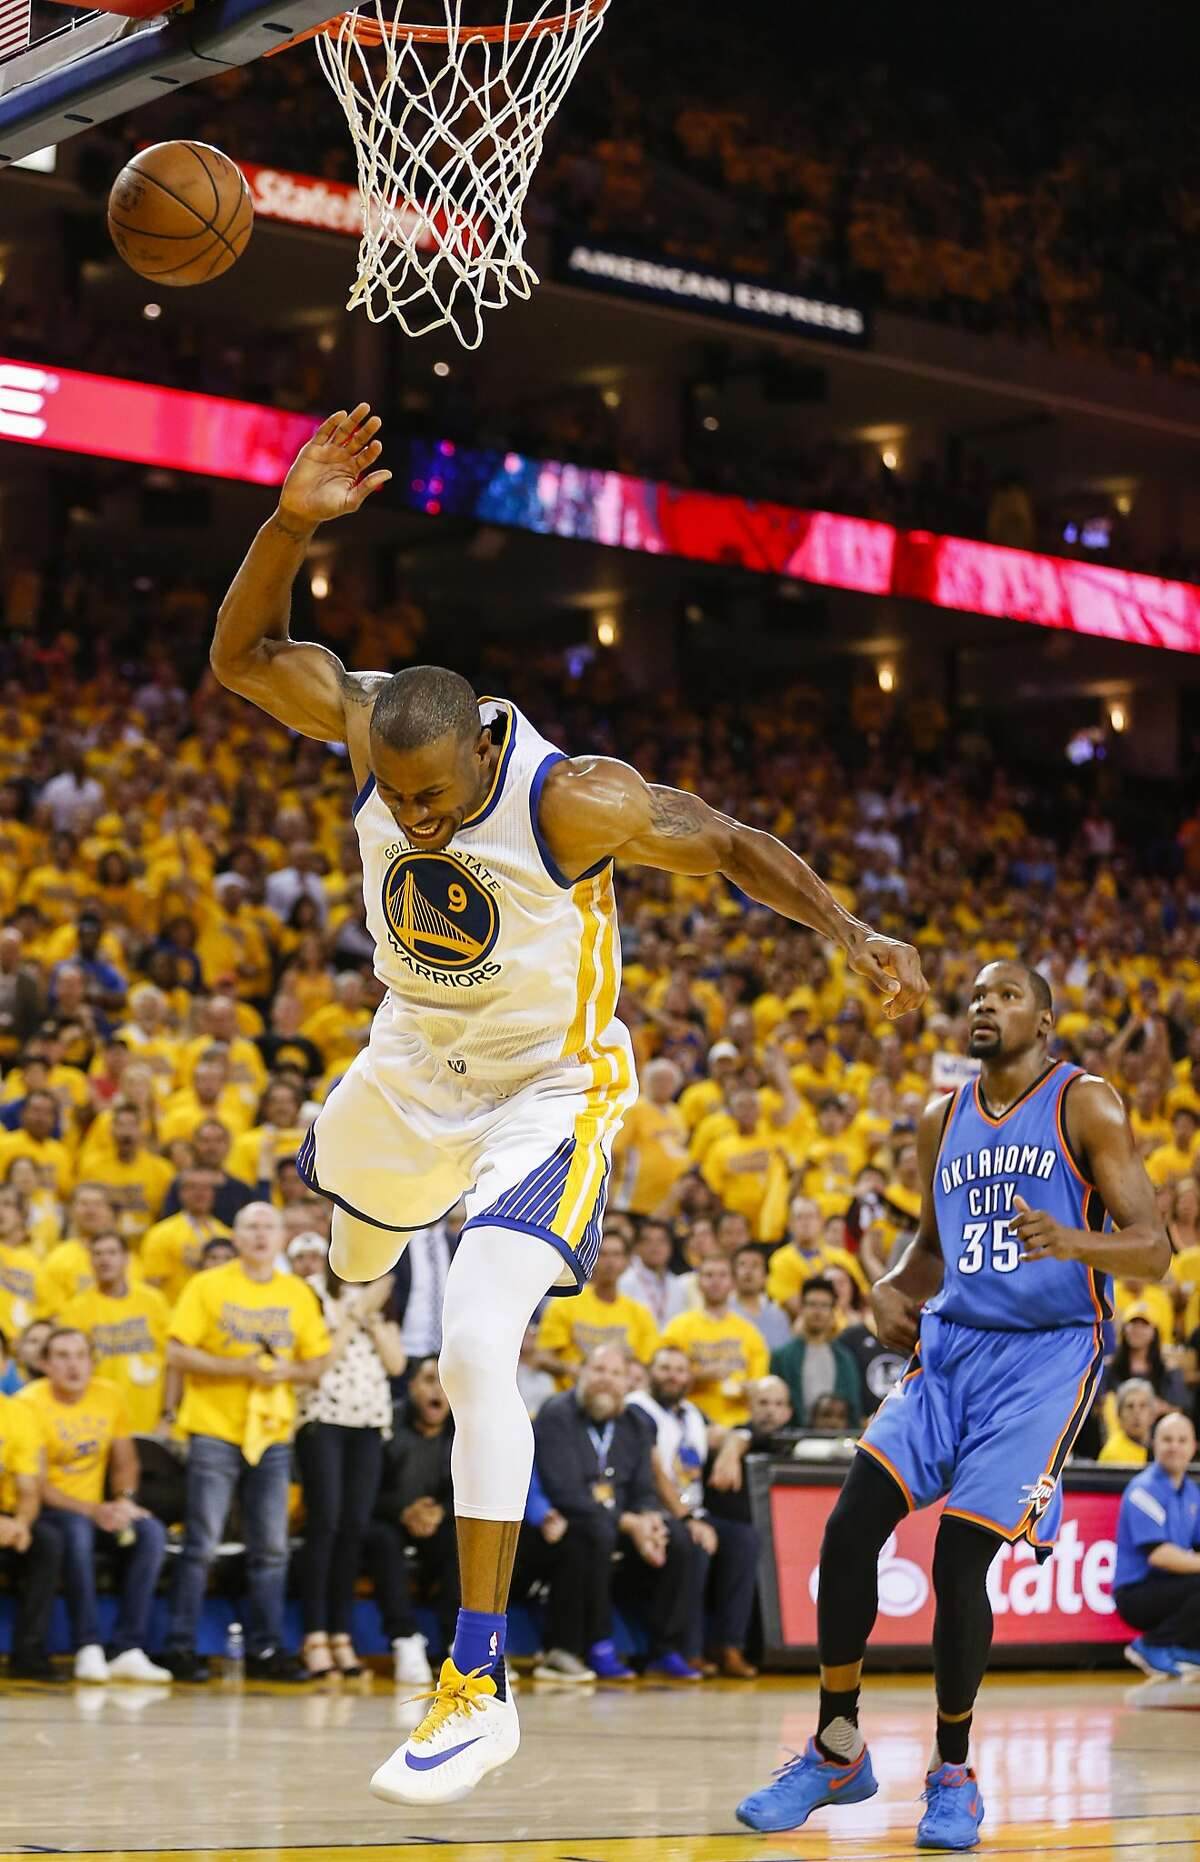 Golden State Warriors� Andre Iguodala goes up for a no look layup in the second quarter during Game 2 of the NBA Western Conference Finals at Oracle Arena on Wednesday, May 18, 2016 in Oakland, Calif.